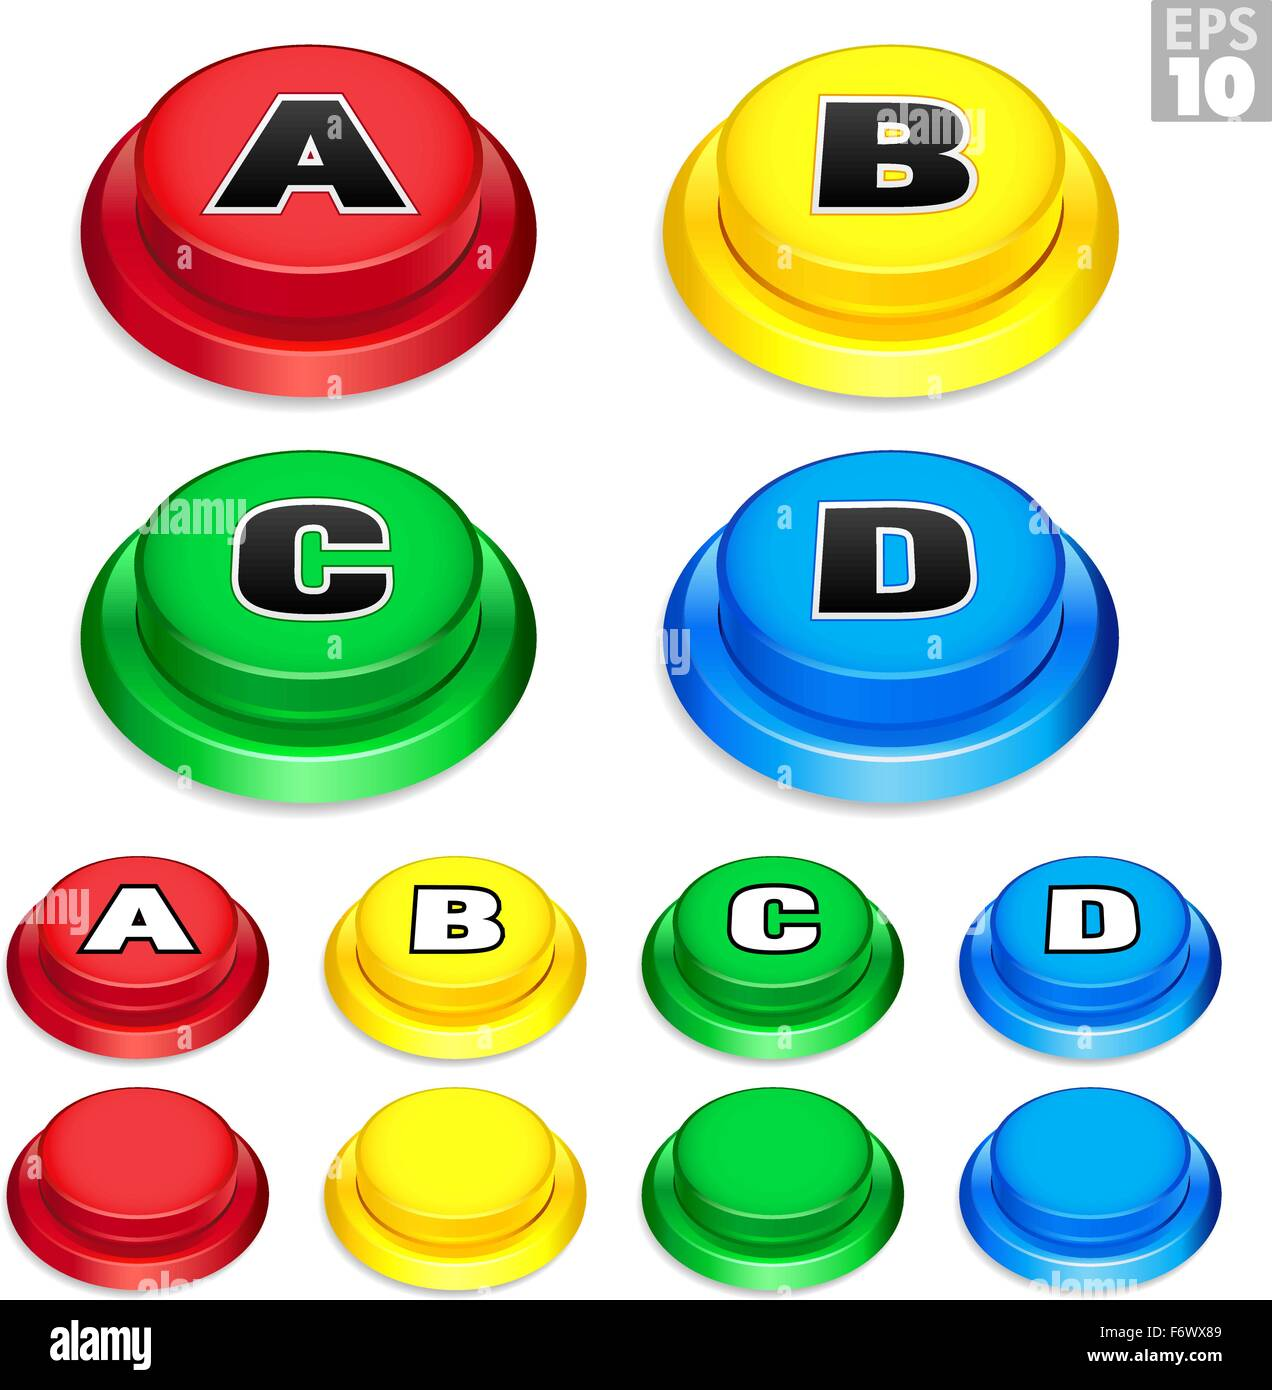 Arcade momentary push buttons In Red, Yellow, Green, and Blue Colors ...